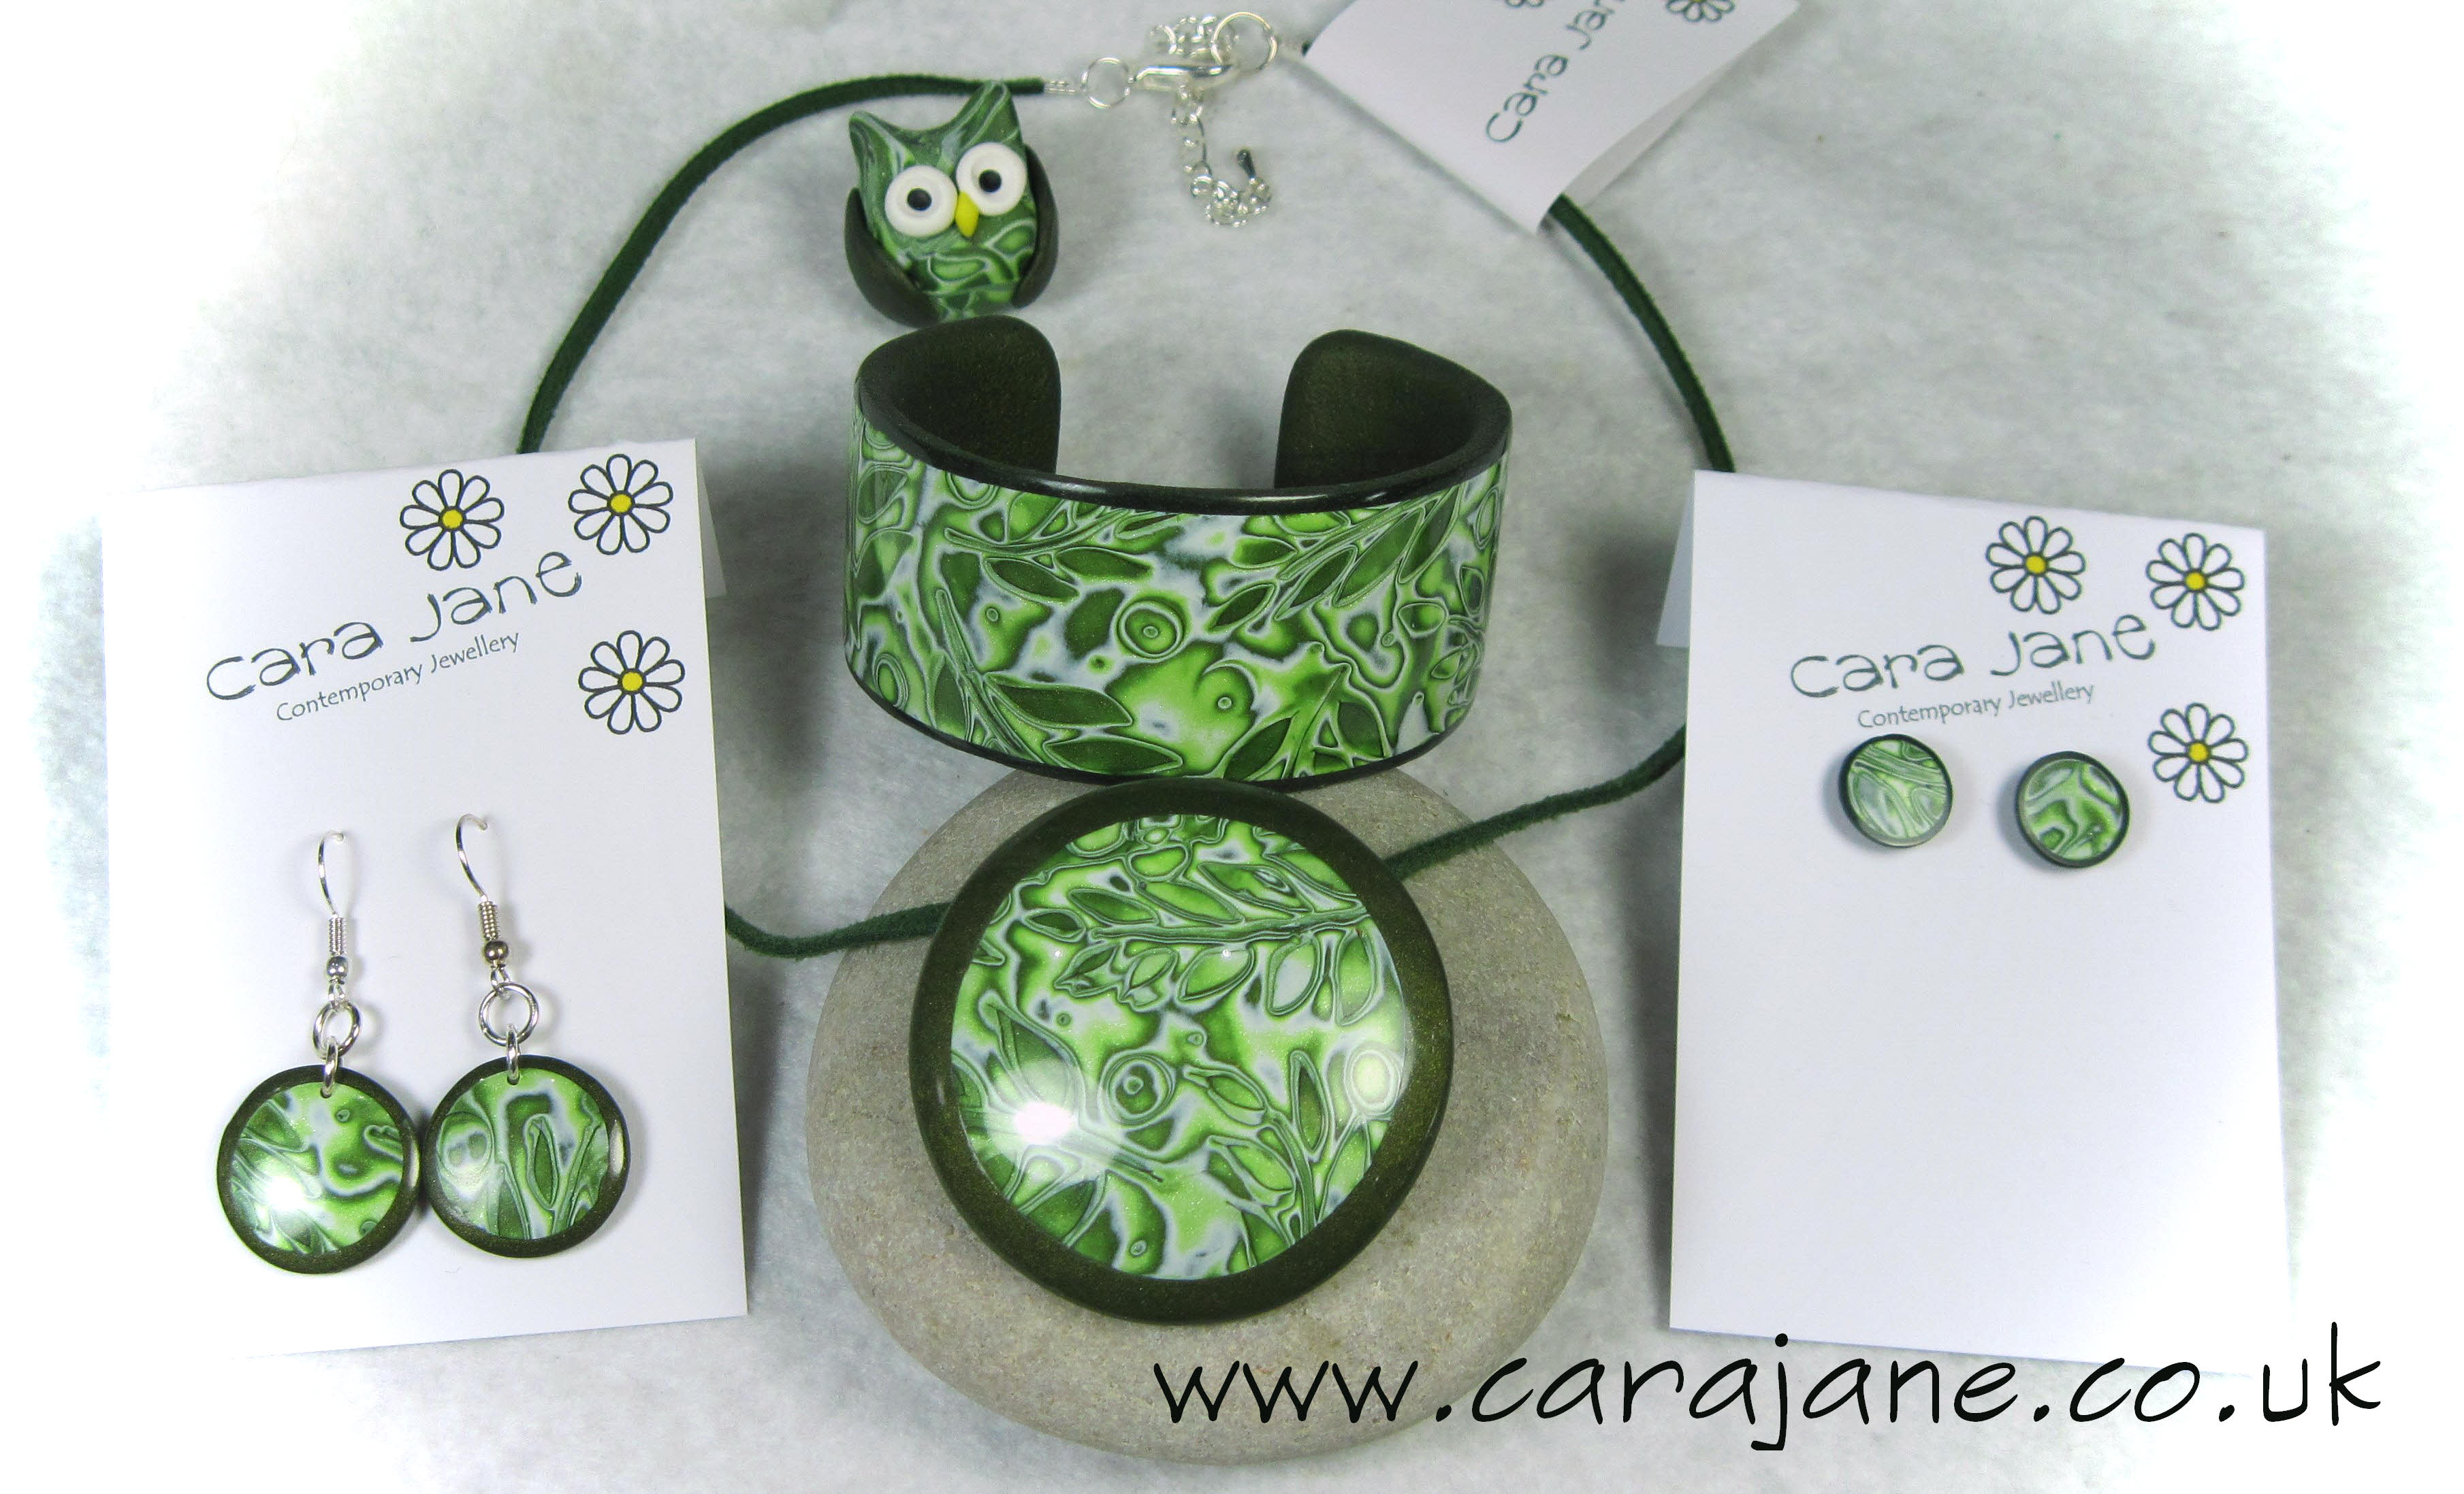 Green Mokume gane jewellery set